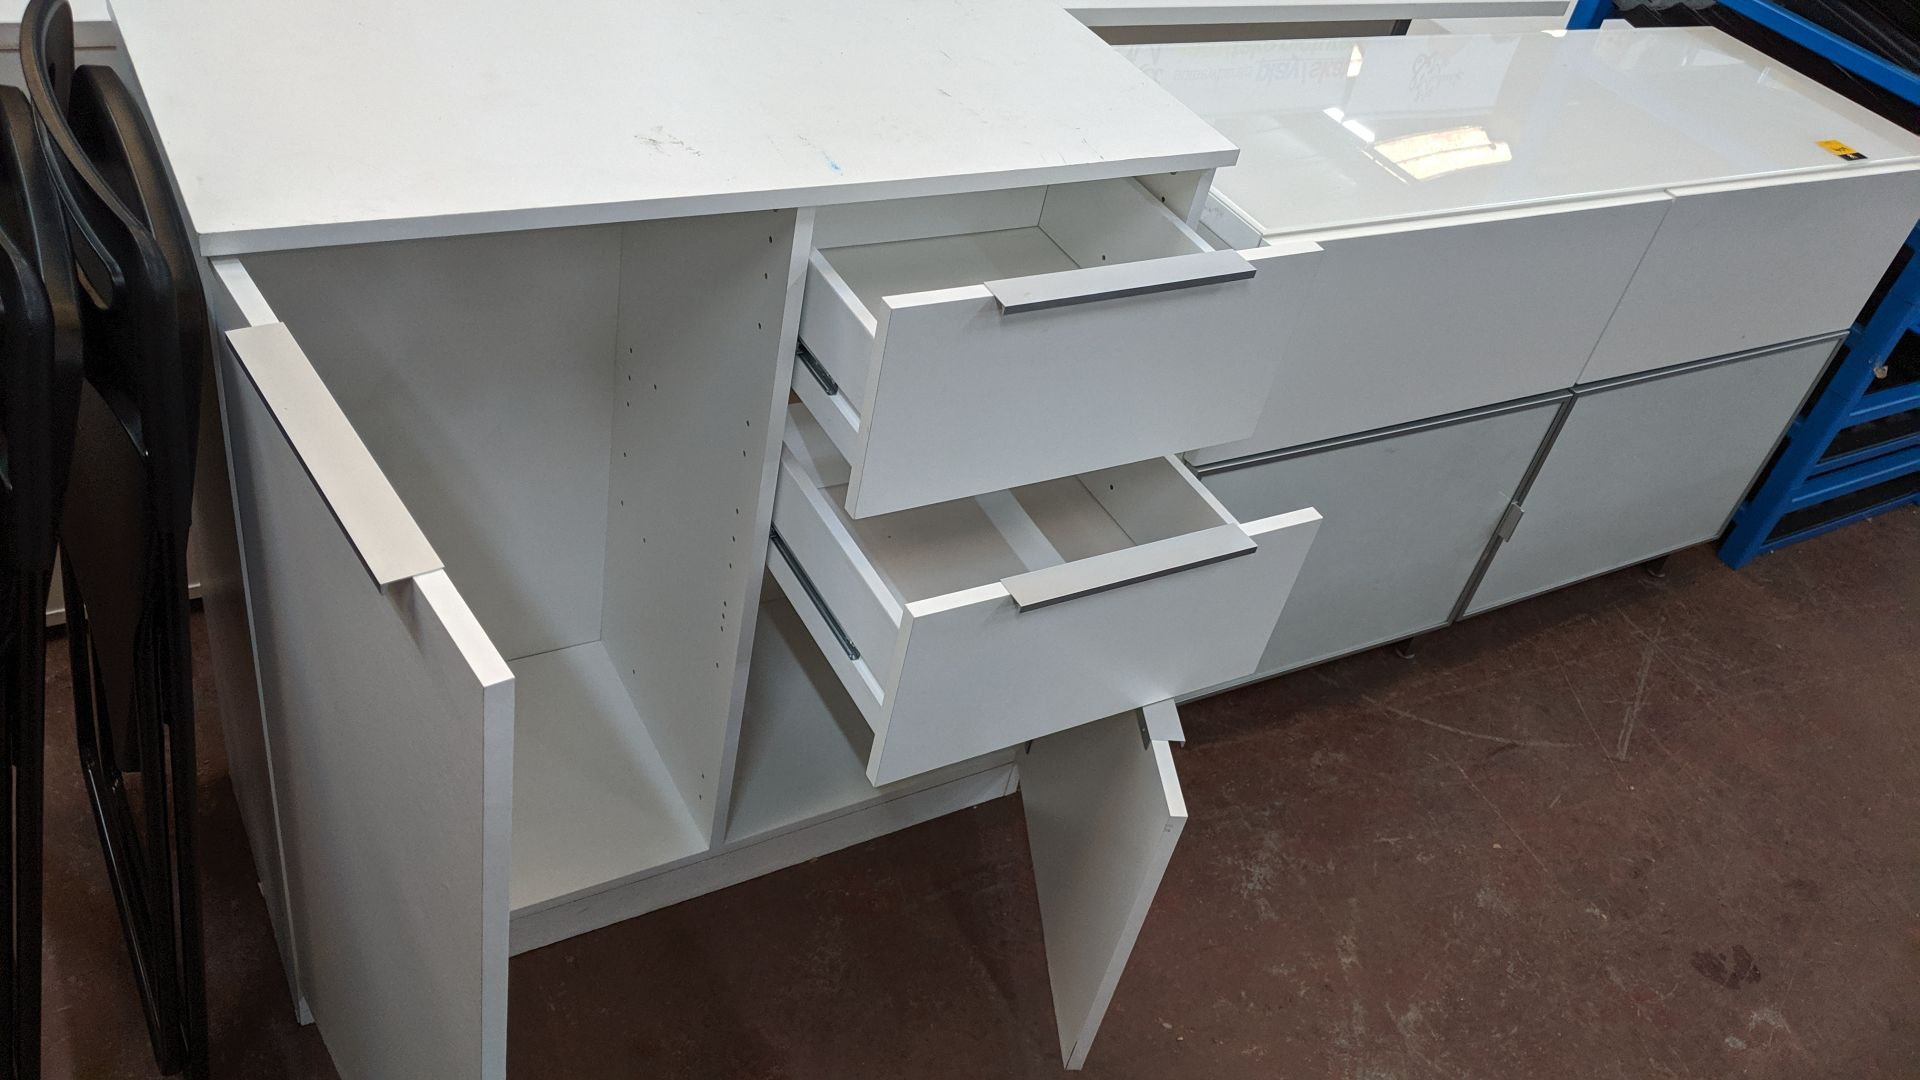 Lot 409 - 2 pieces of white storage furniture. This is one of a large number of lots used/owned by One To